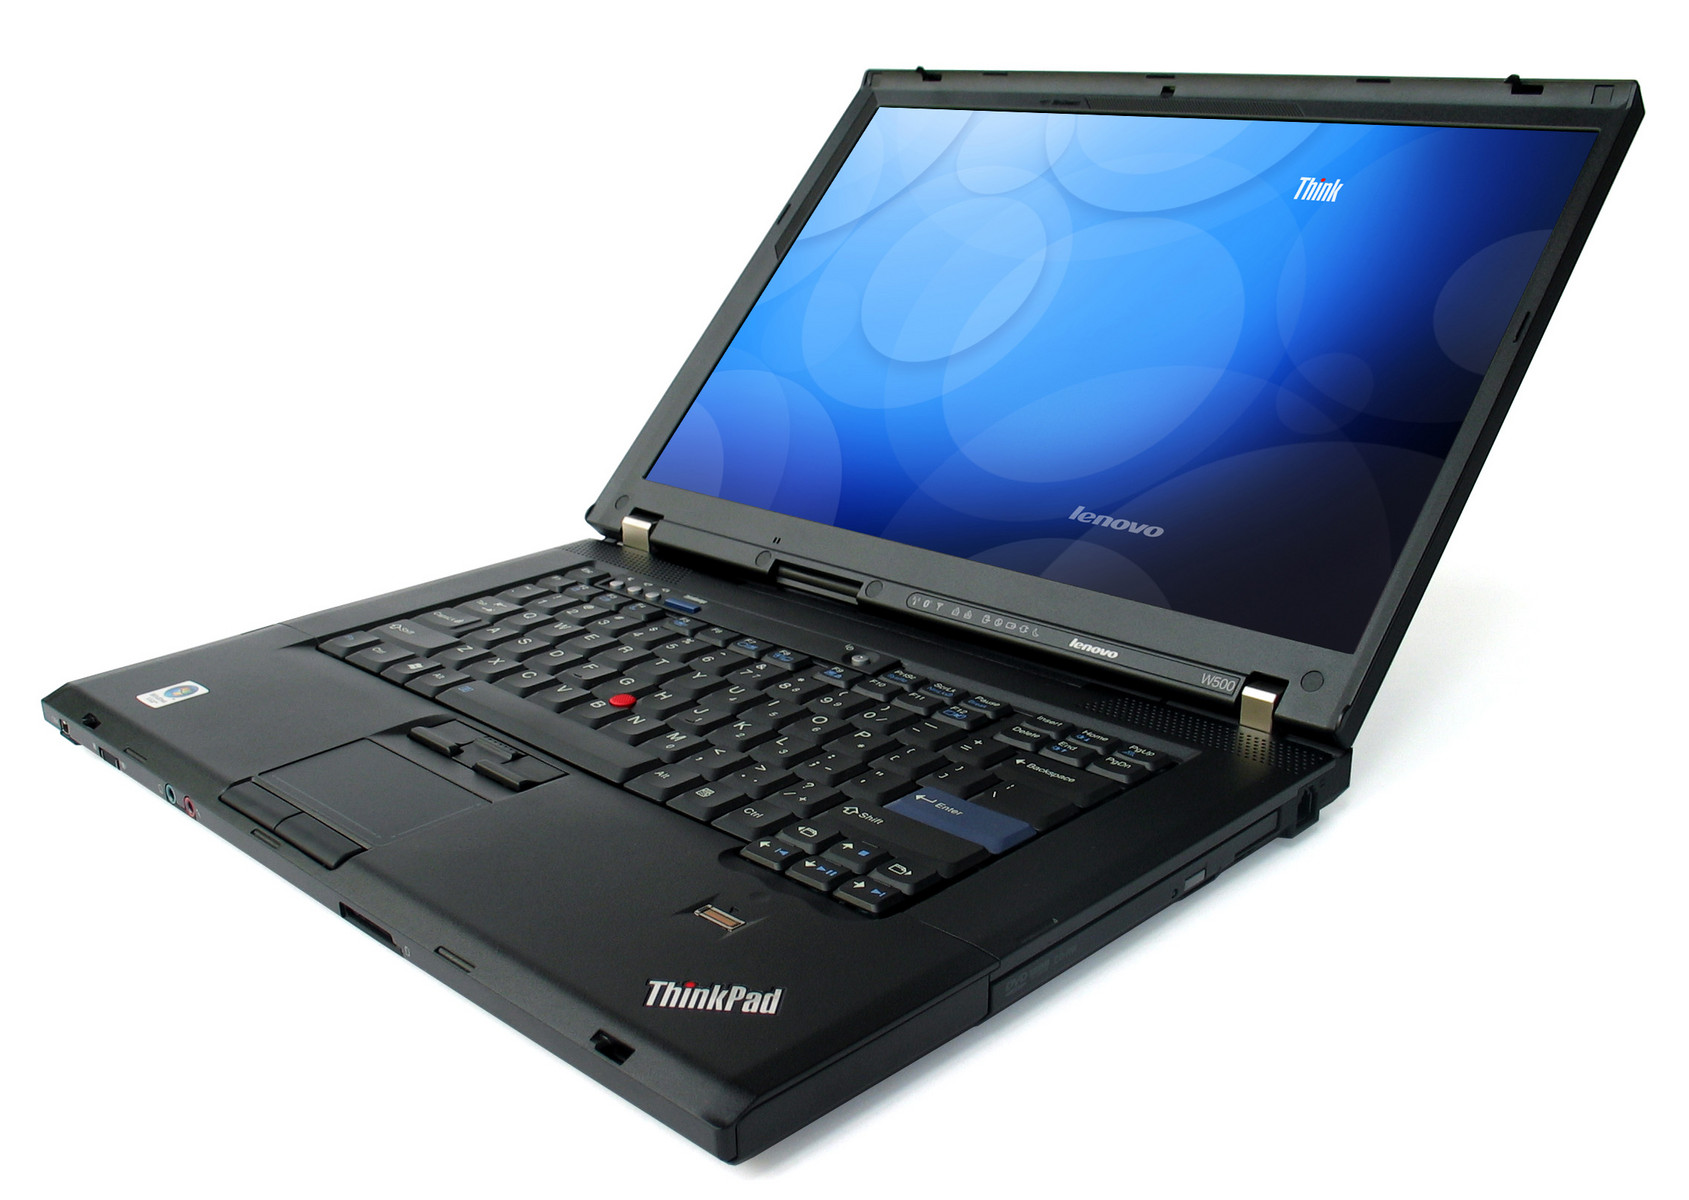 Wallpaper Hd For Tablet 7 Inch Lenovo Thinkpad W500 Notebookcheck Net External Reviews